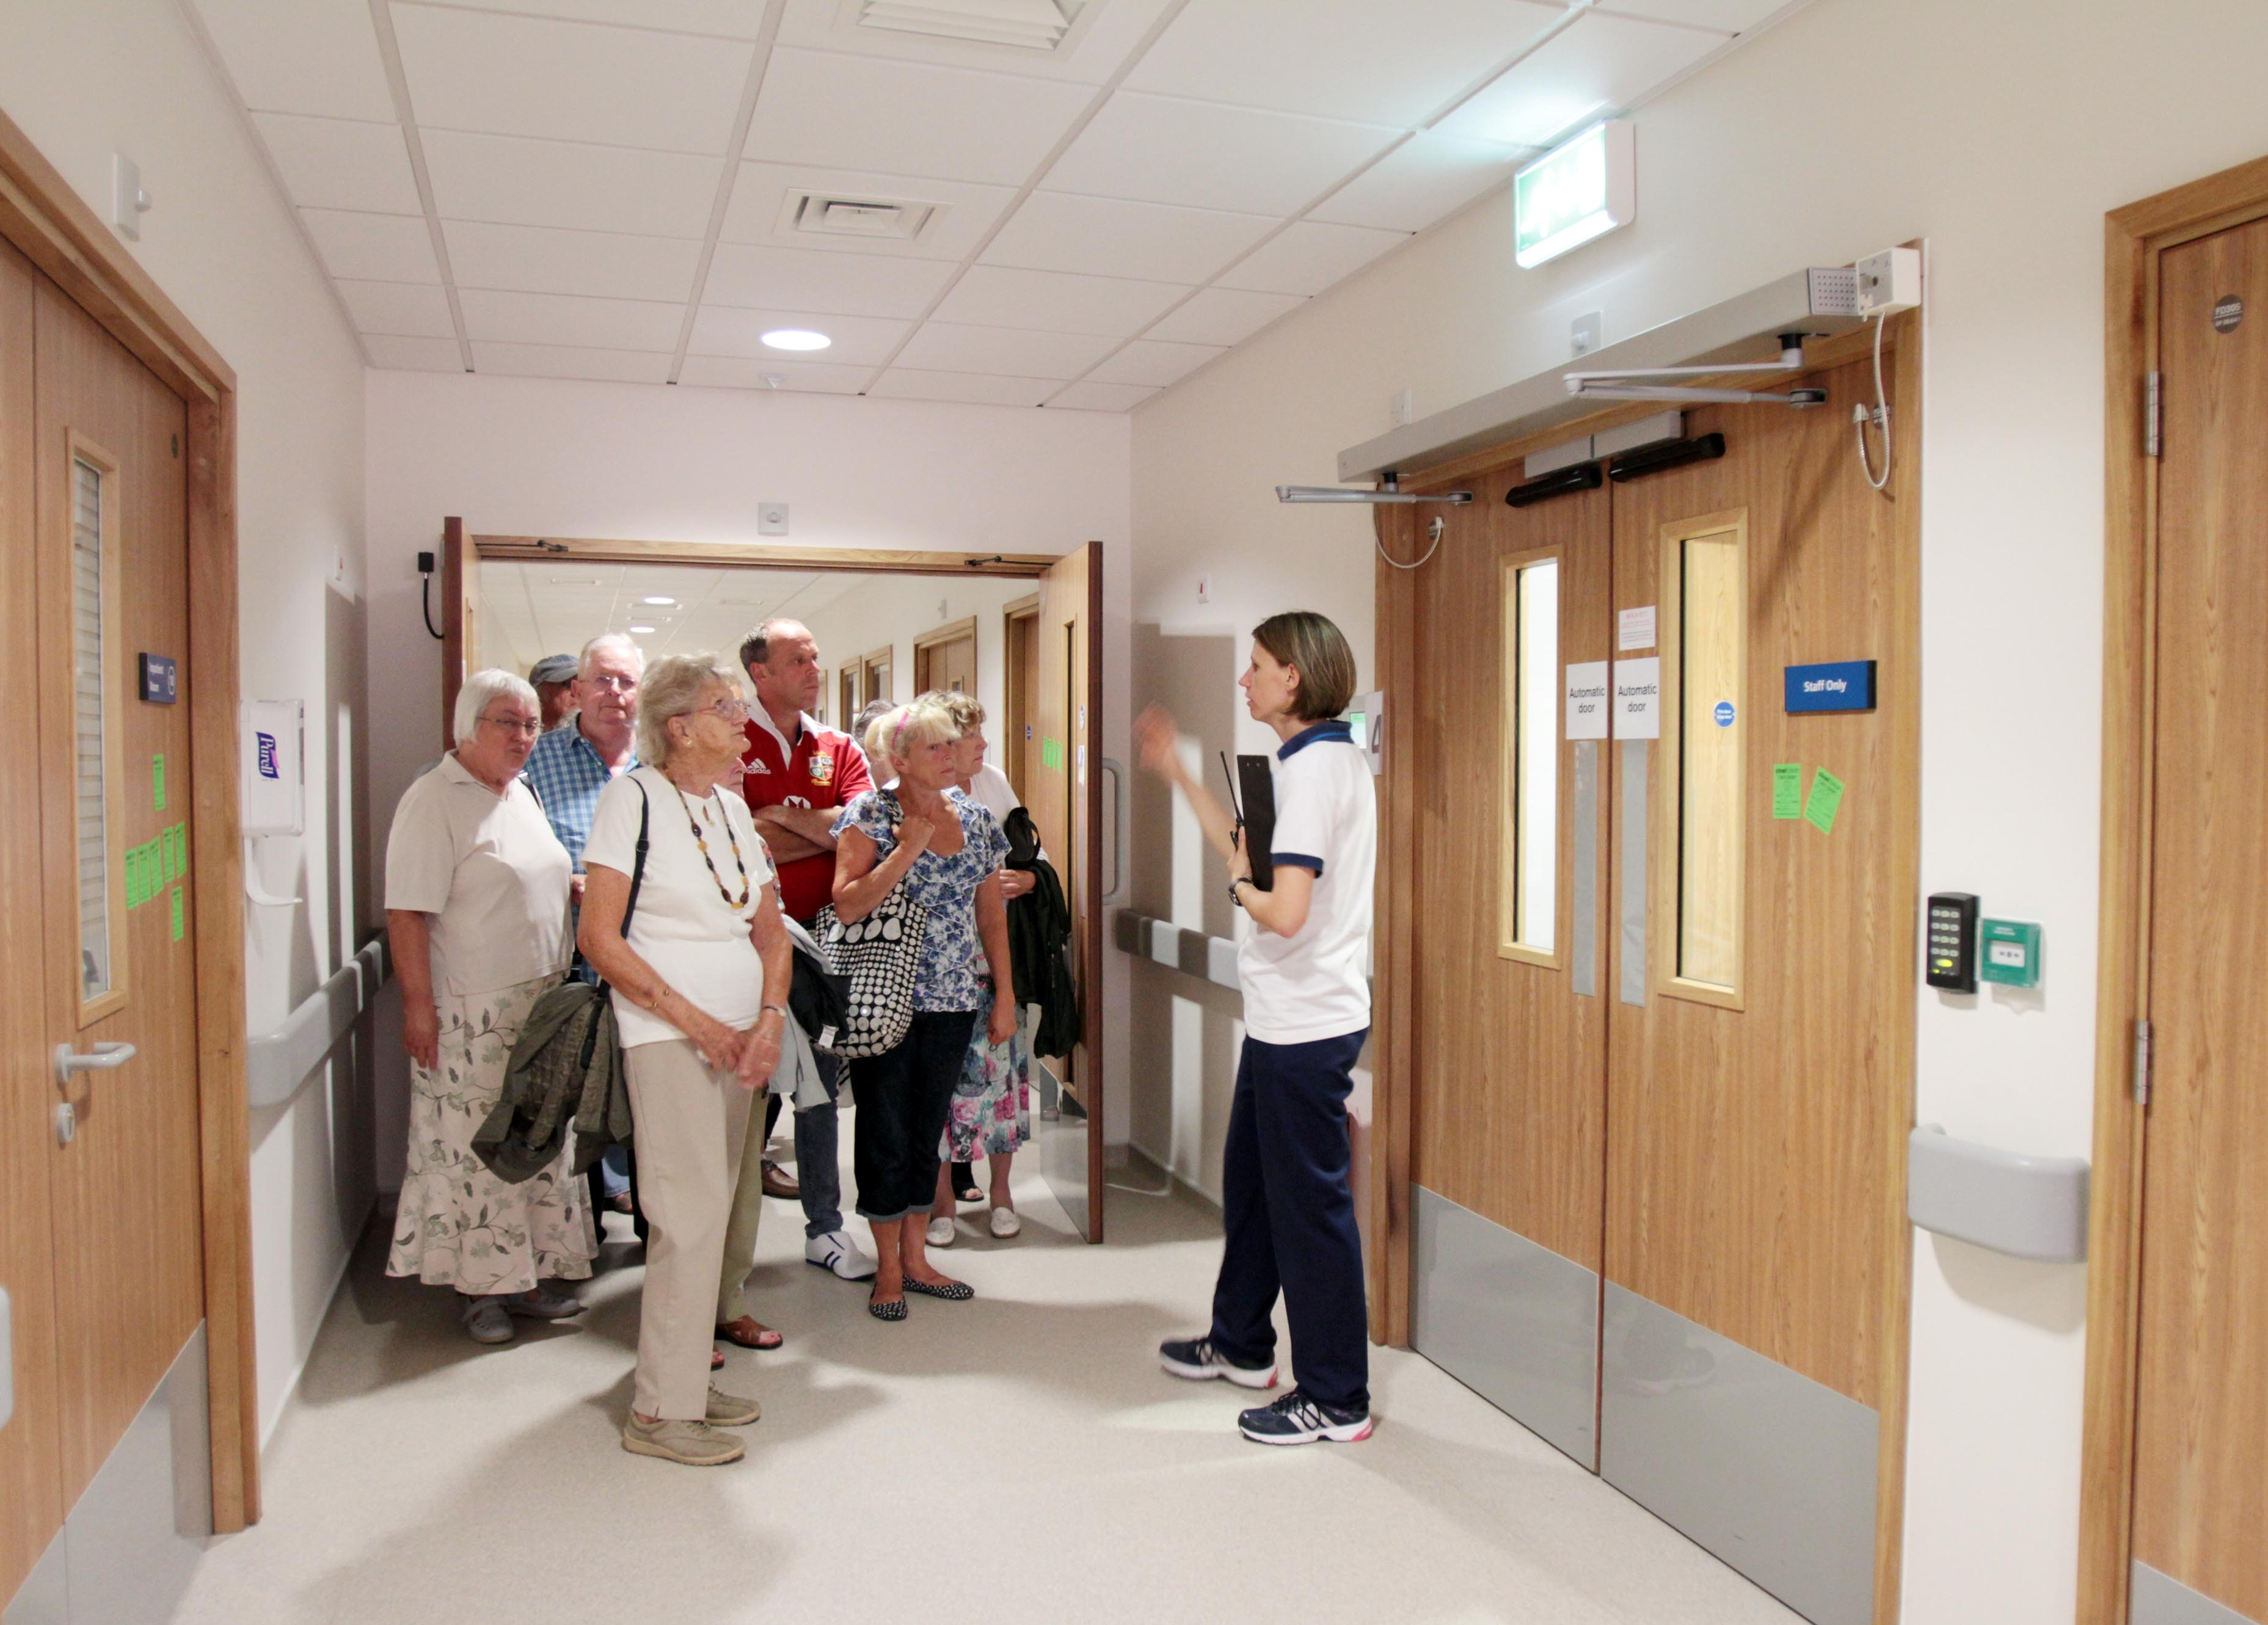 Occupational therapist Clarie Plummer takes a group of visitors round the new hospital copy